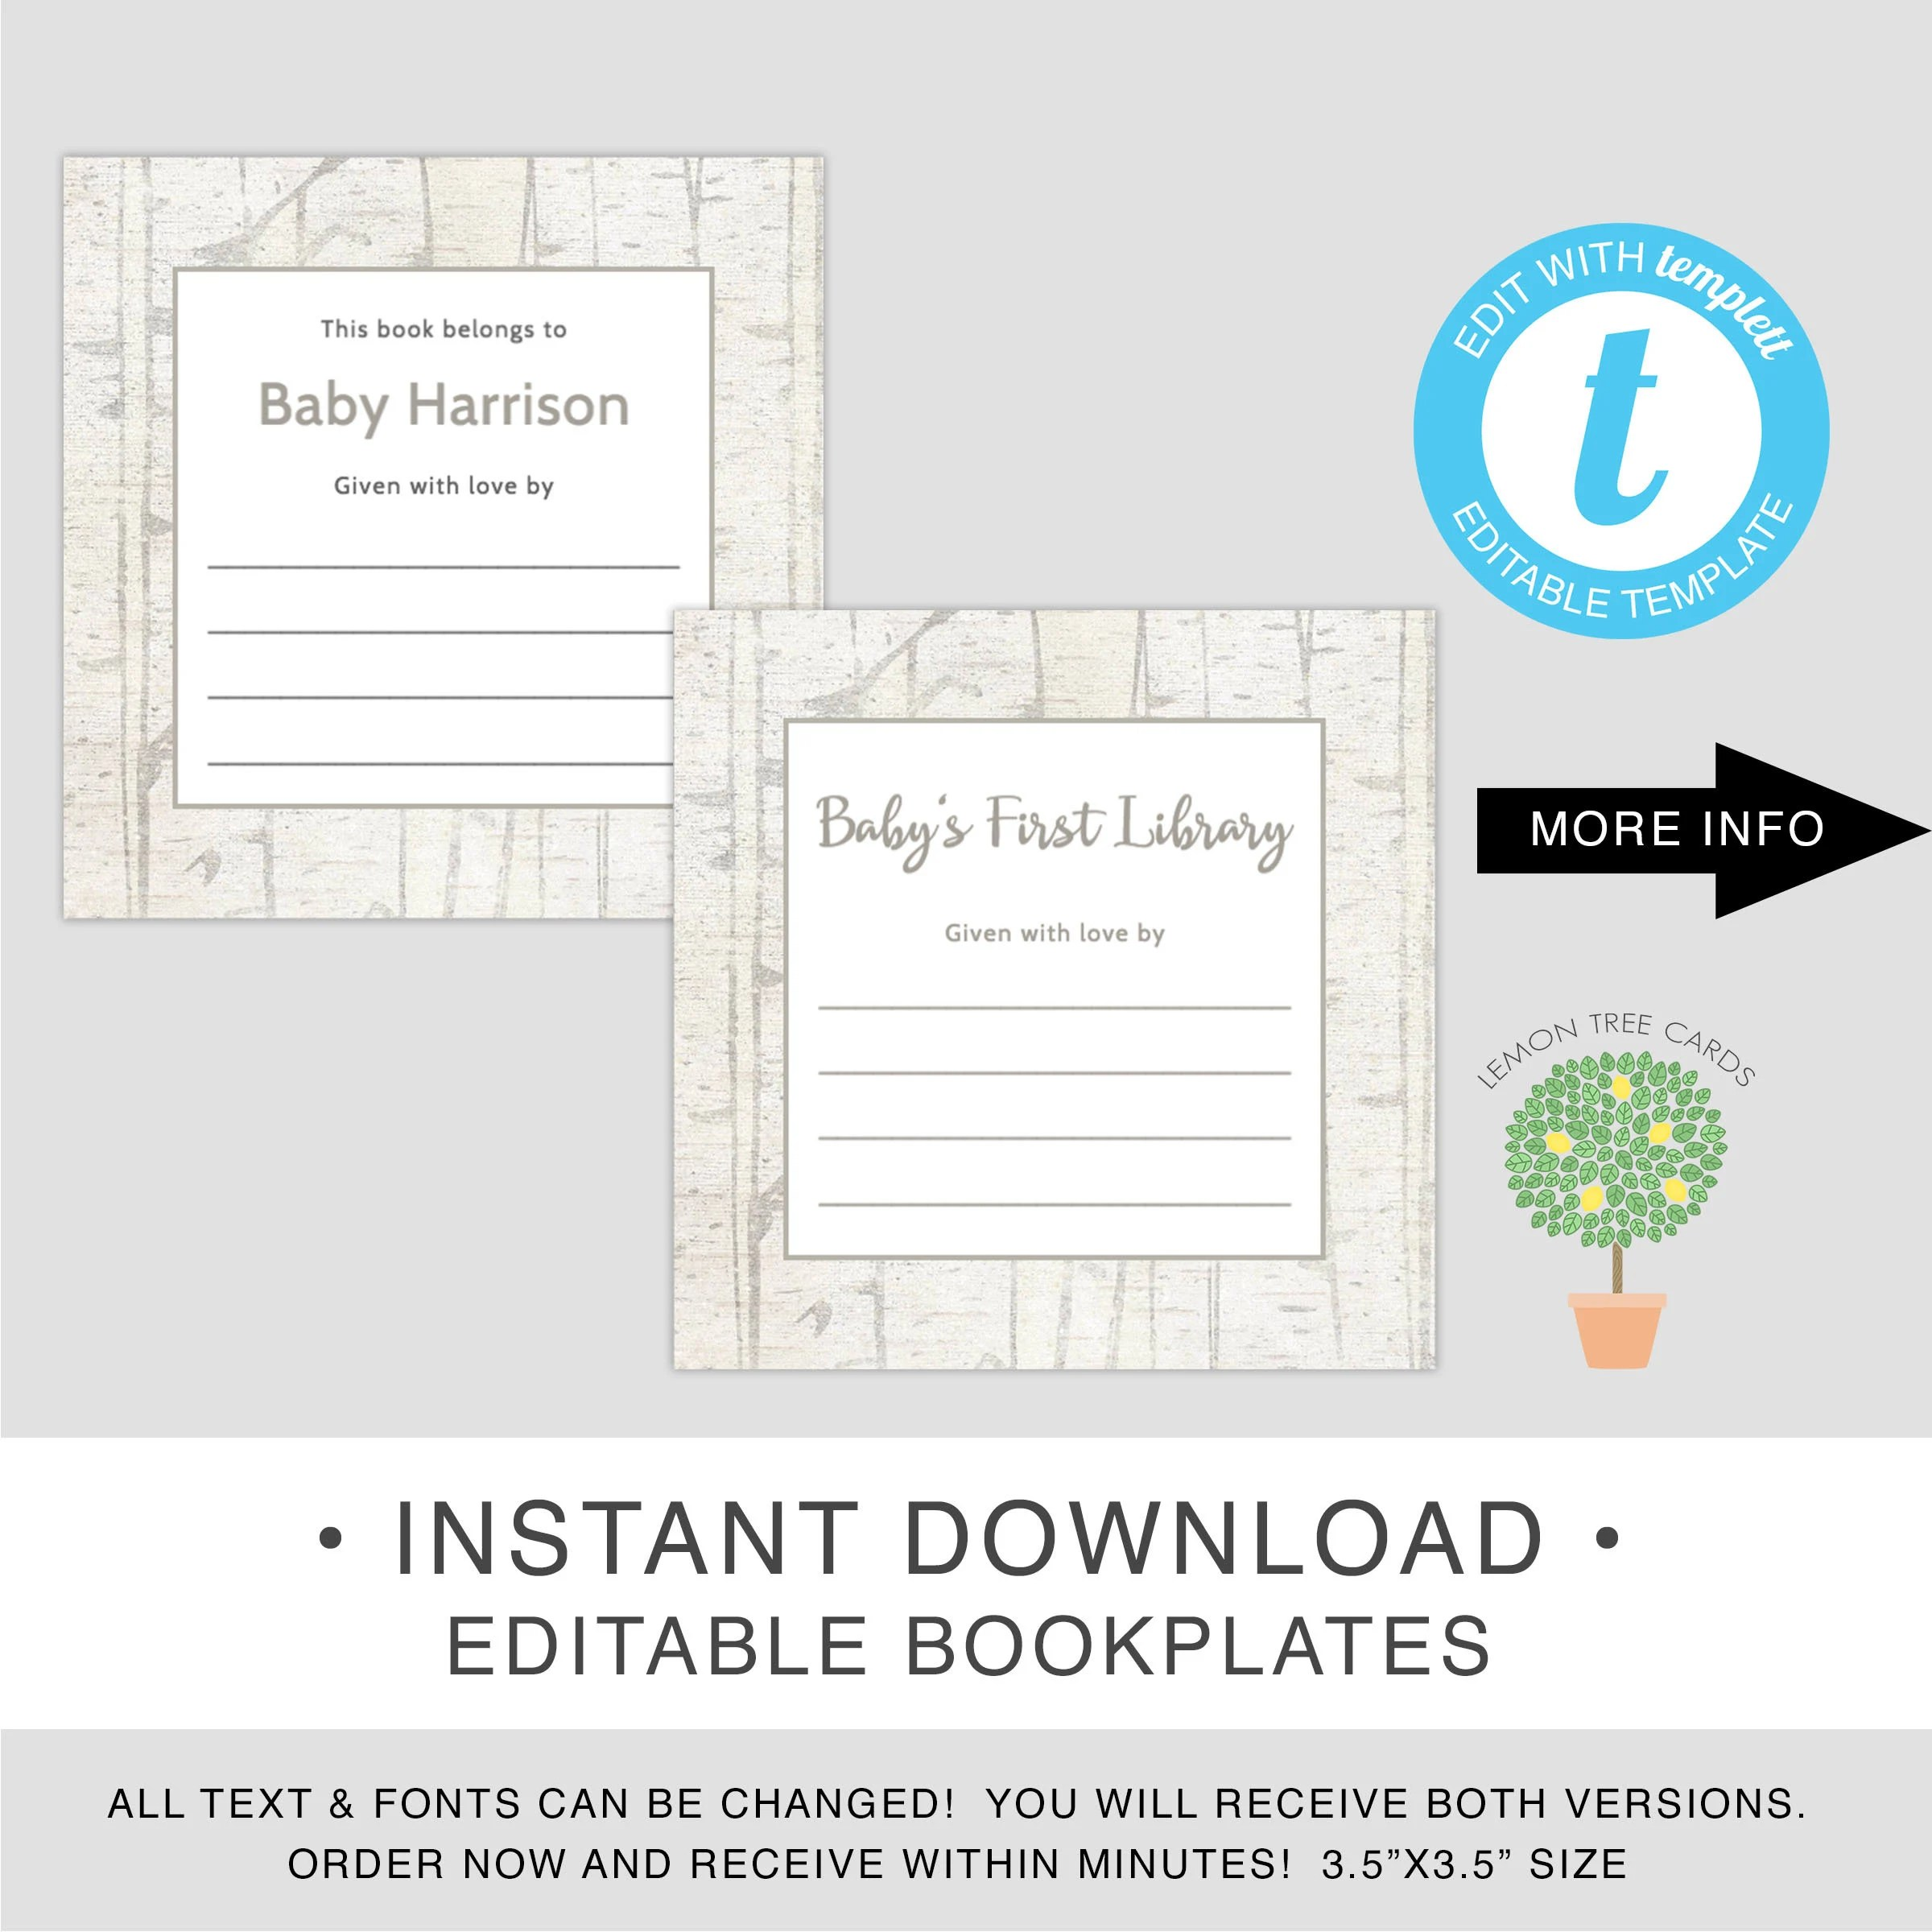 EDITABLE Bookplates rustic book stickers instant download Etsy